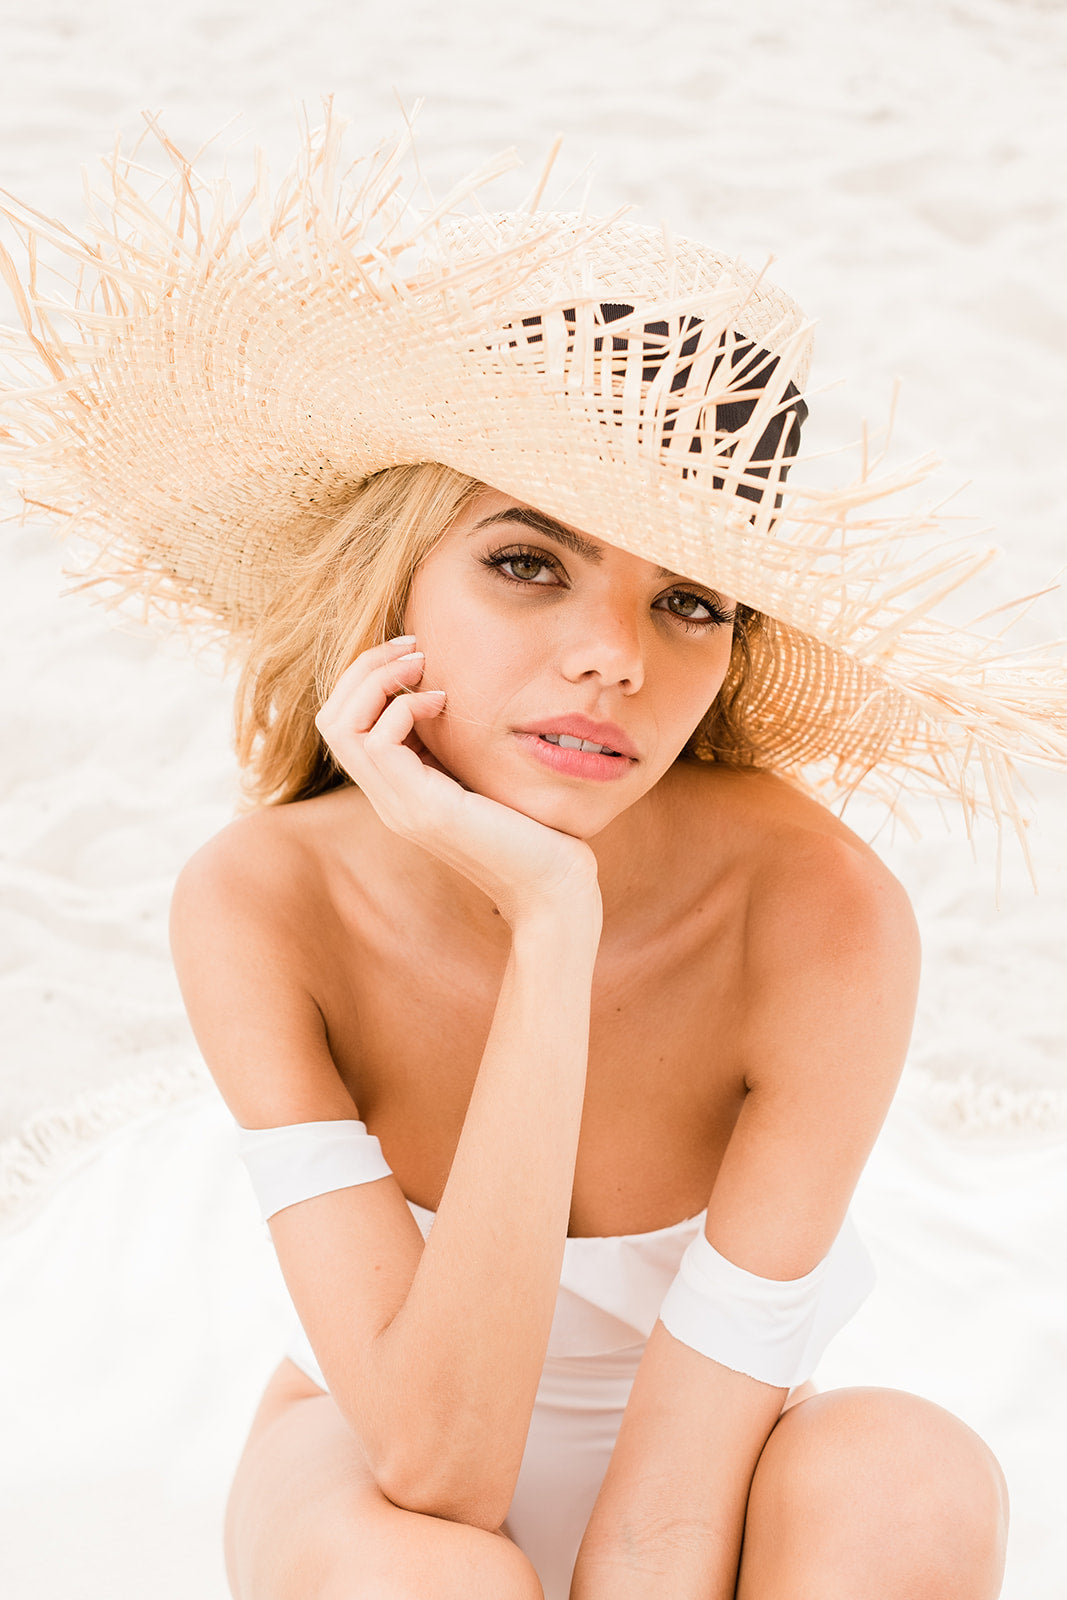 The Positano Beach Hat with Ribbon - The Beach Bride by Chic Parisien, a destination for beach weddings, bachelorettes and honeymoons